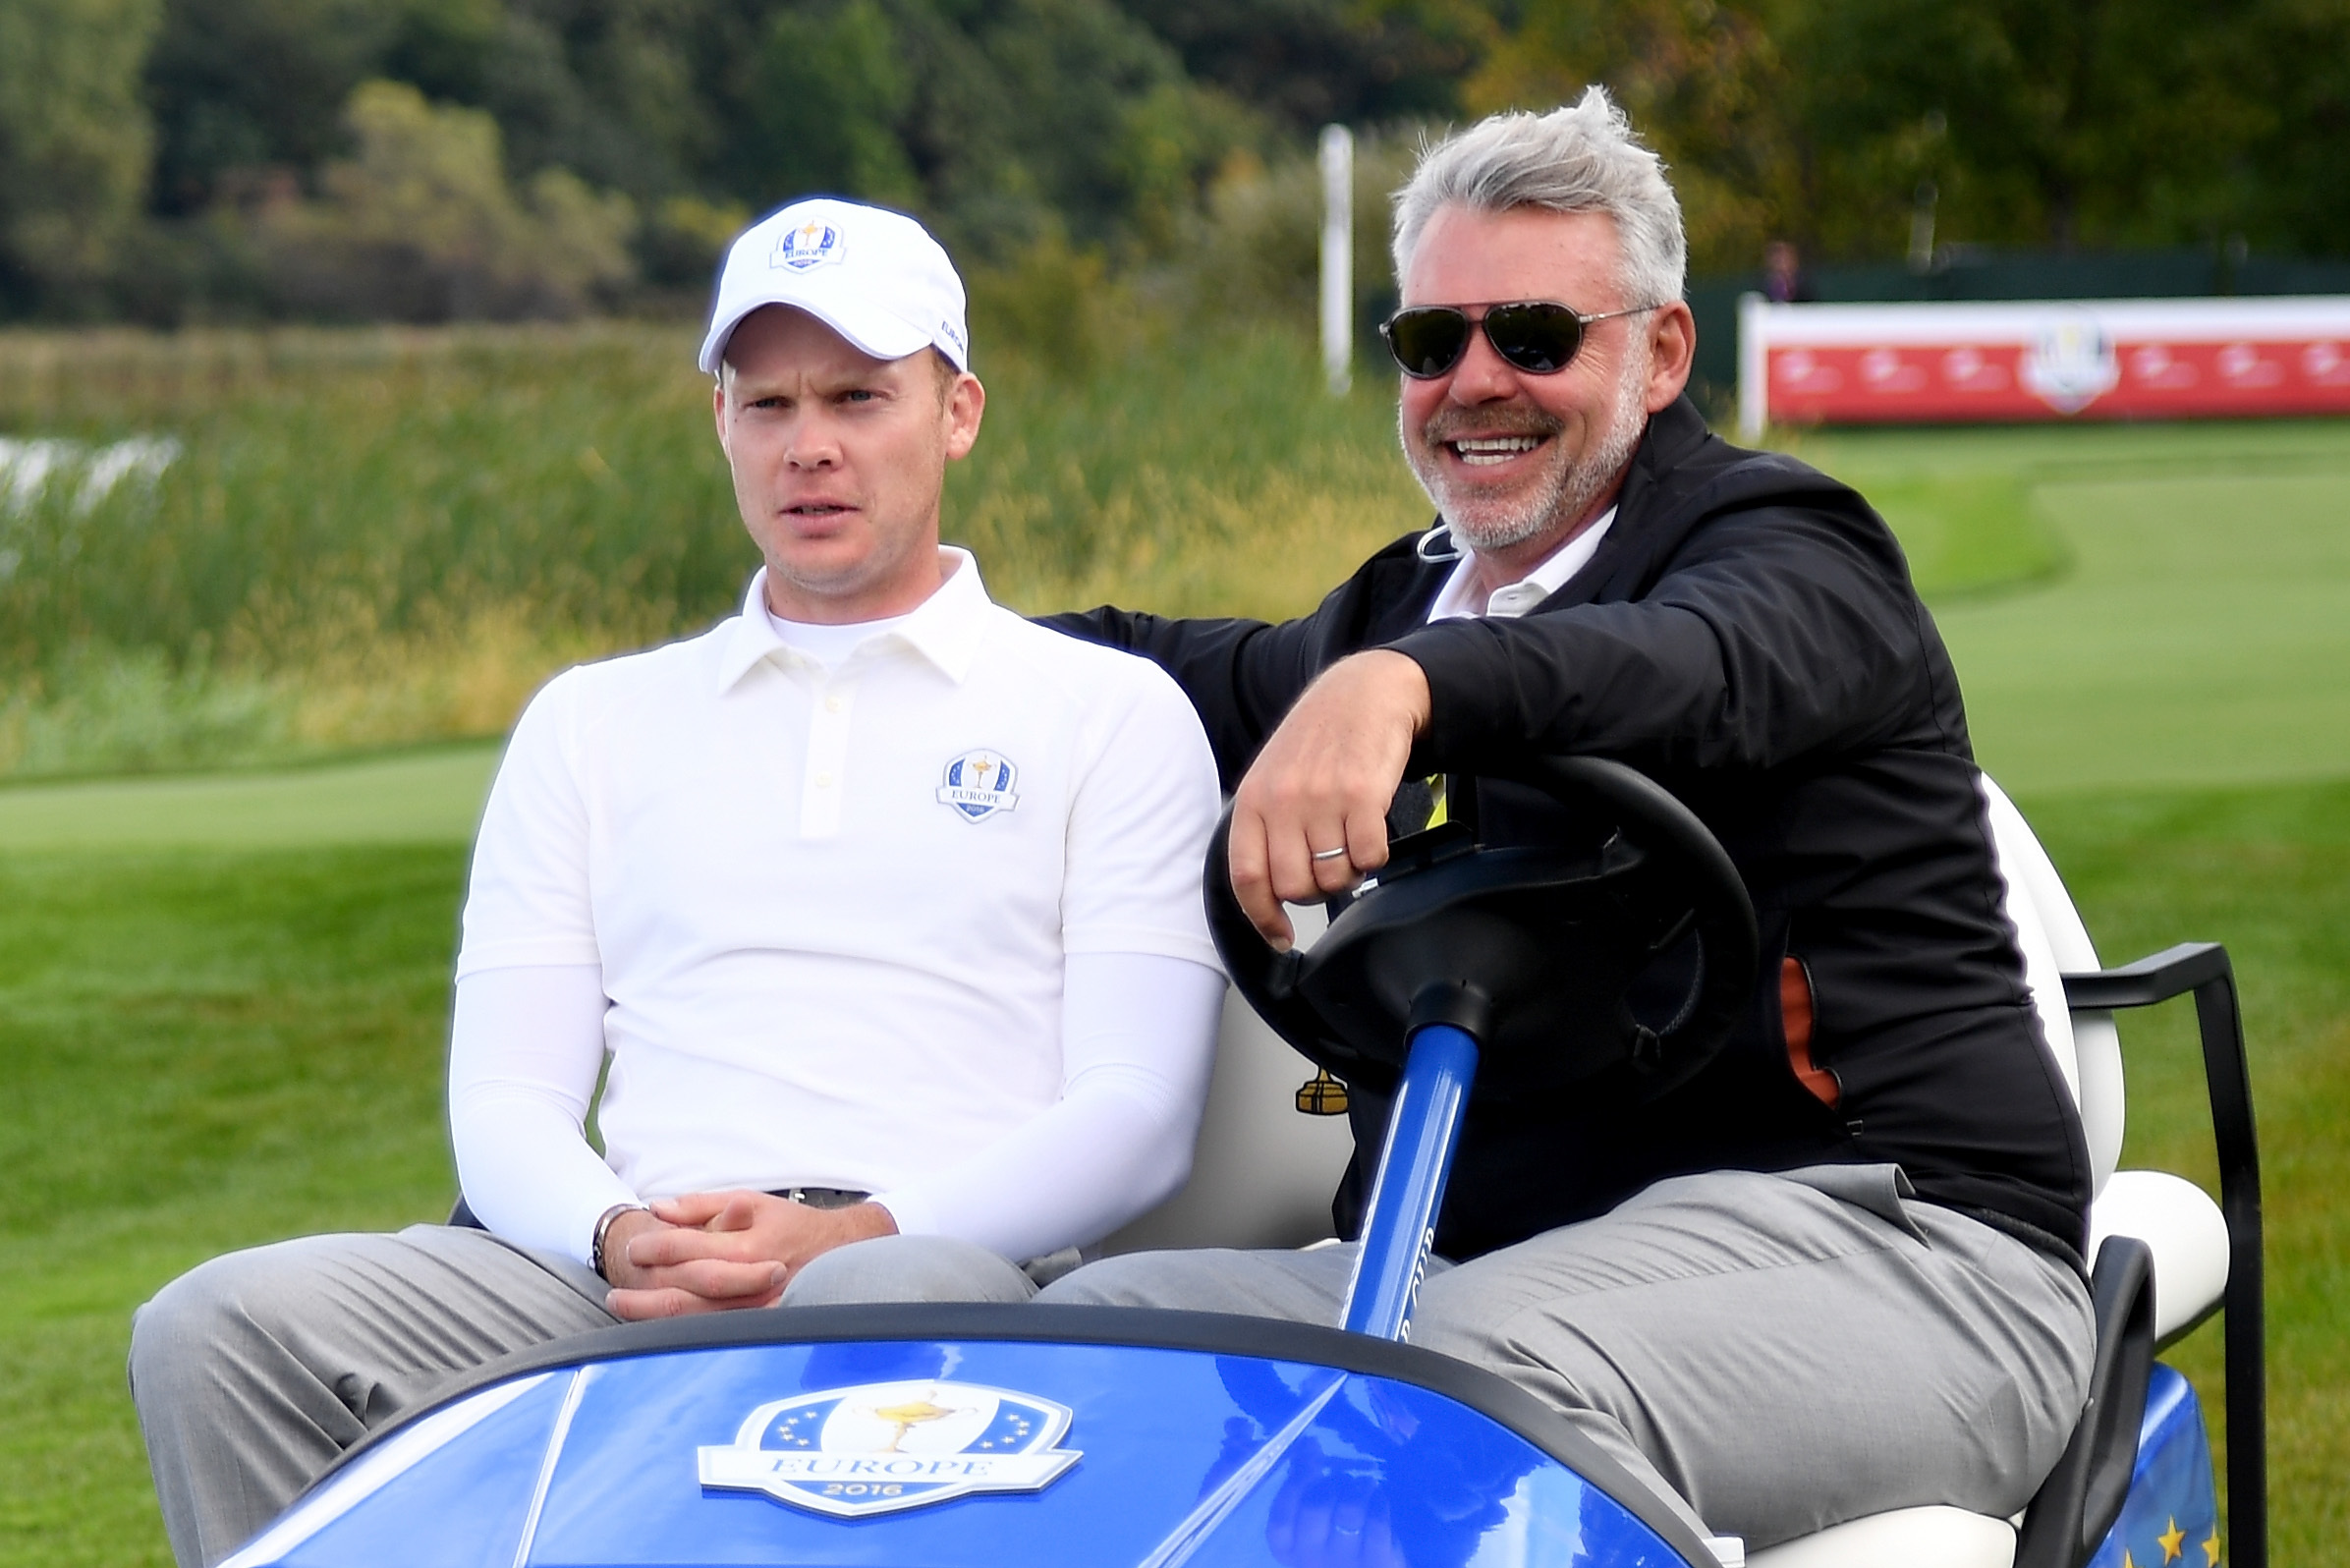 Danny Willett and Darren Clarke enjoying the scenes at Hazeltine yesterday.